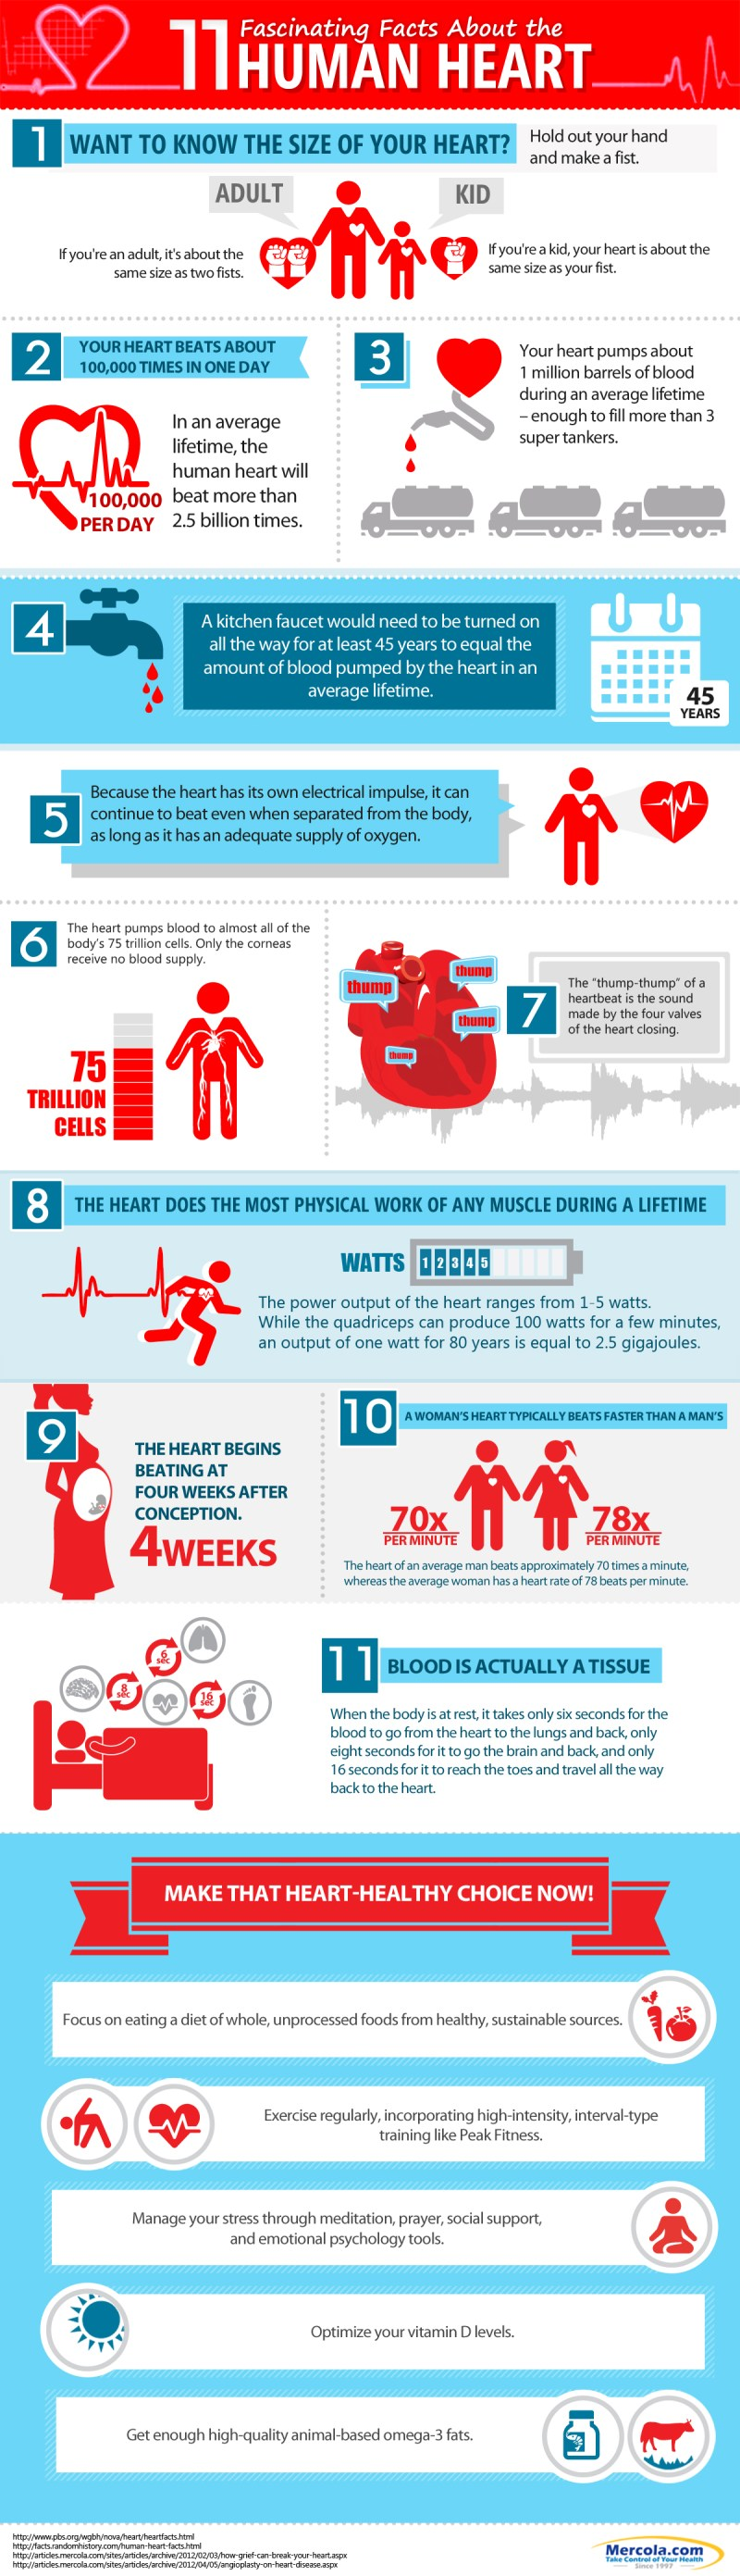 human-heart-facts-highres